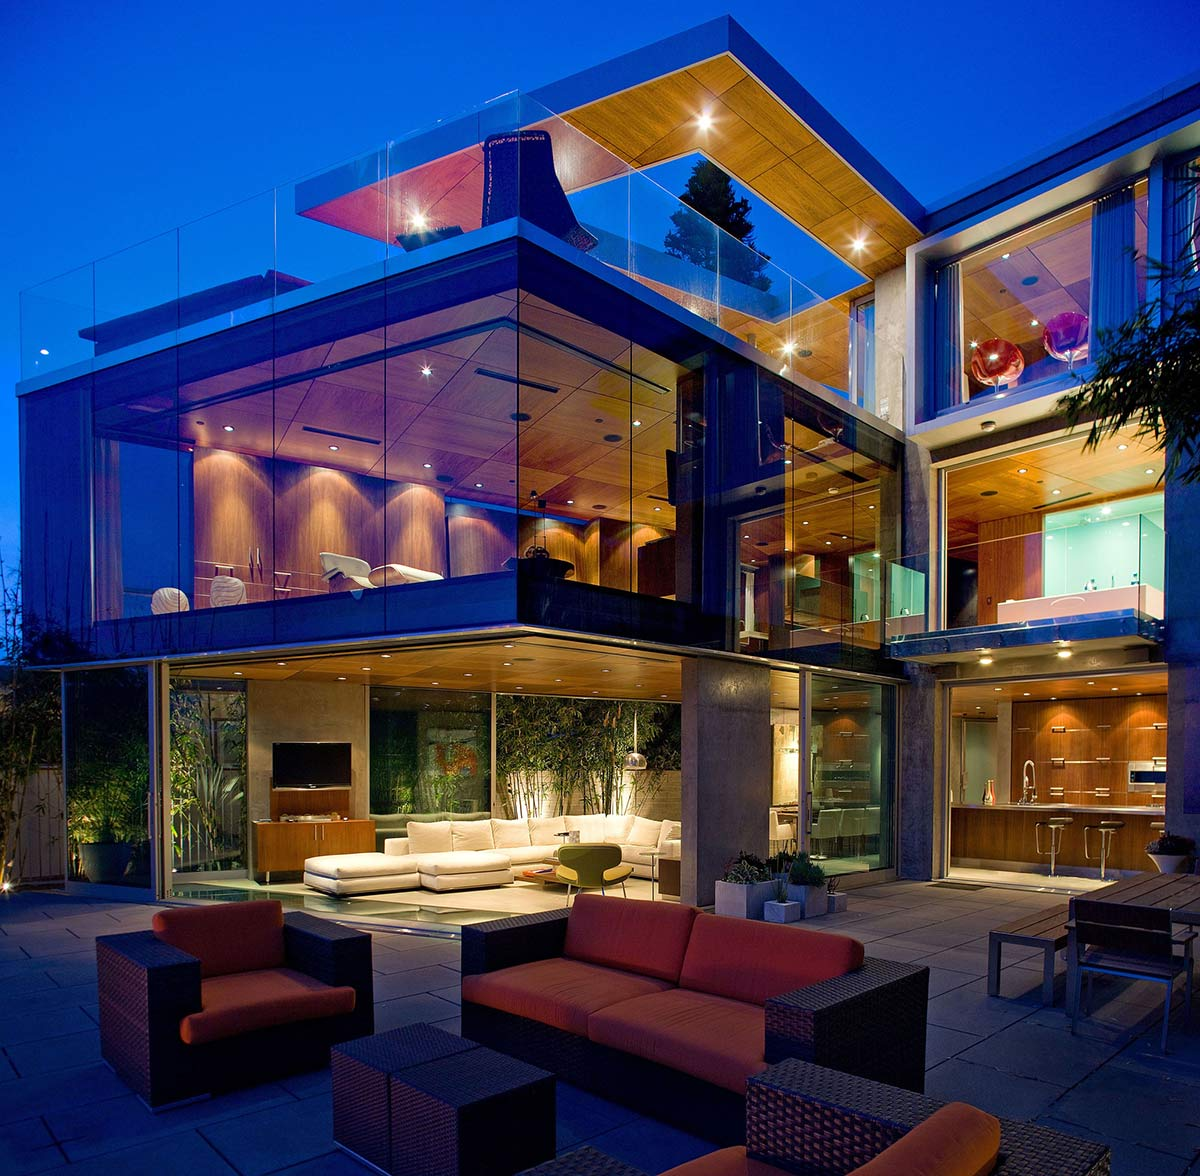 Glass Walls, Lighting, Outdoor Living, Exquisite Ocean Front Residence in La Jolla, California